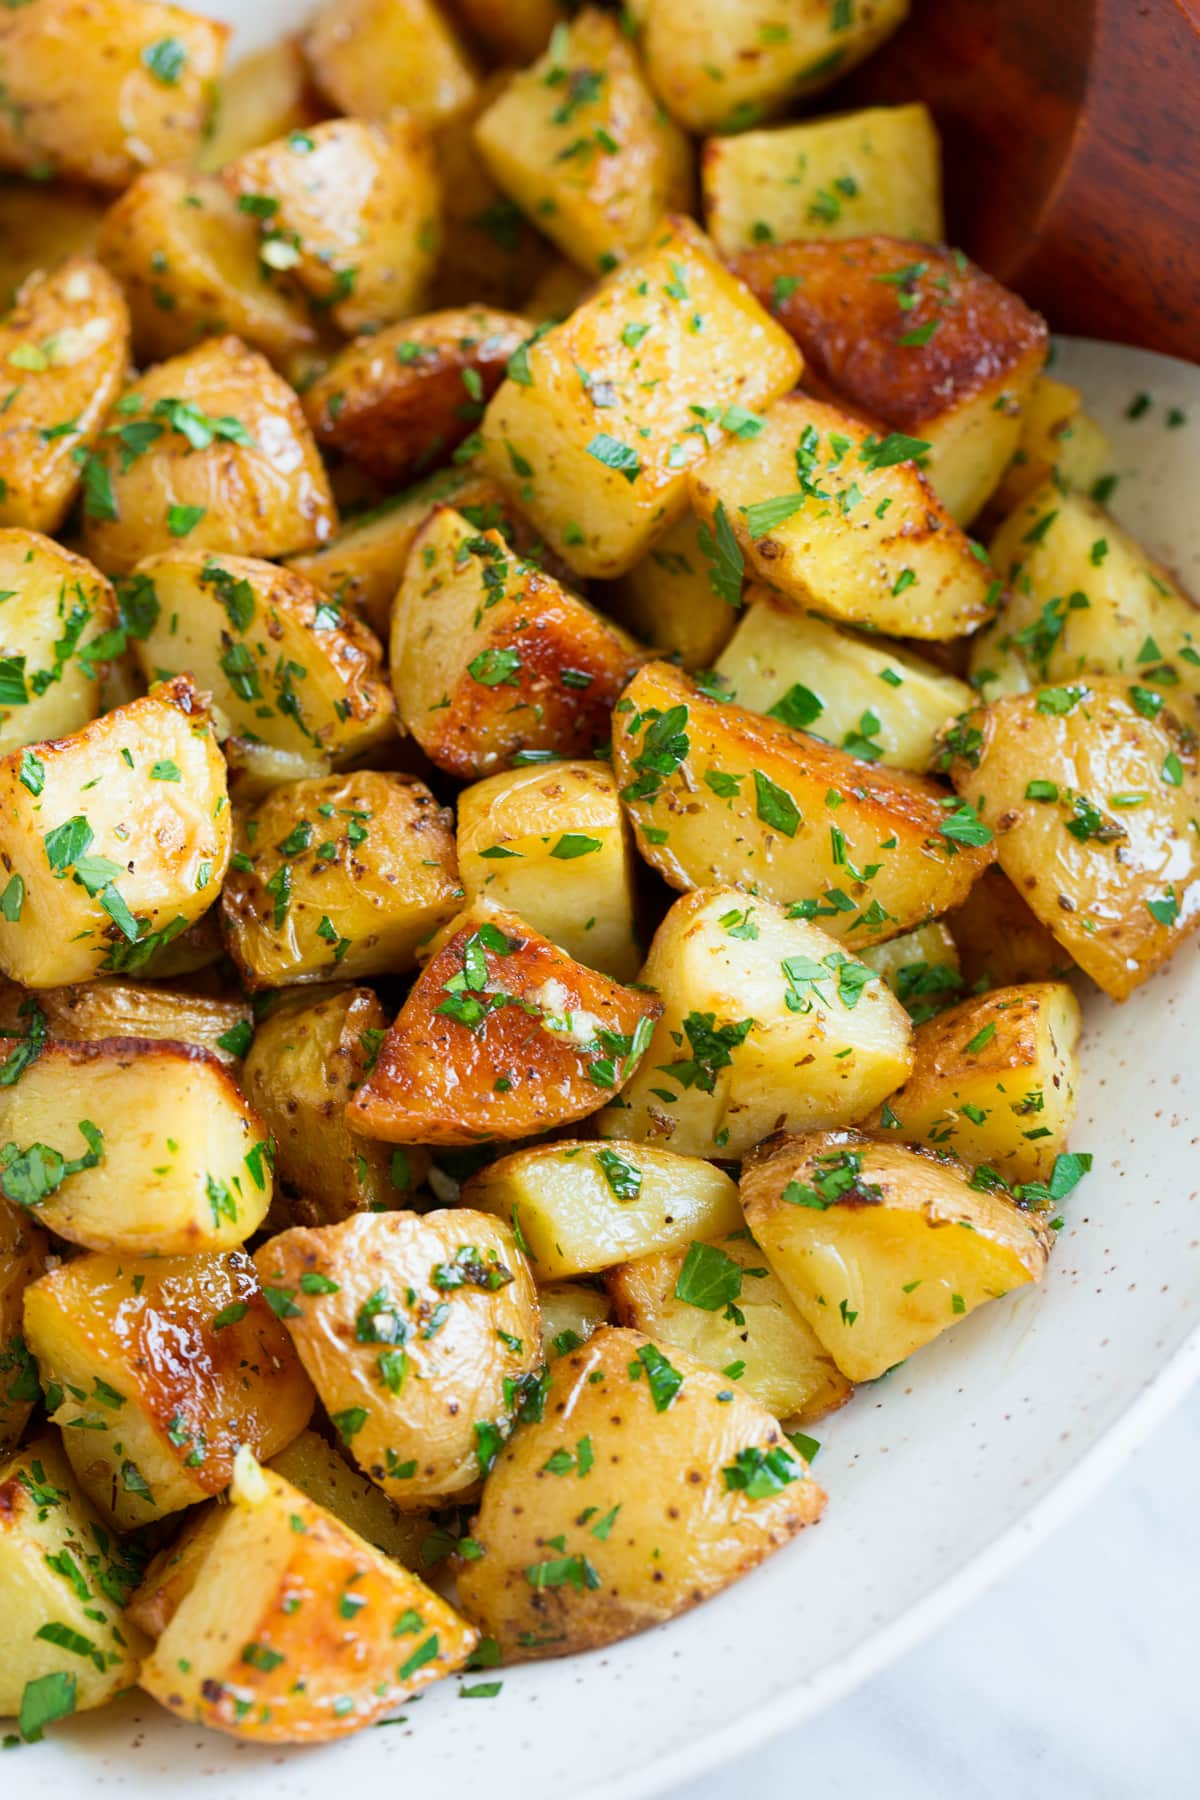 Close up image of roasted potatoes with lemon and parsley in a white serving bowl.